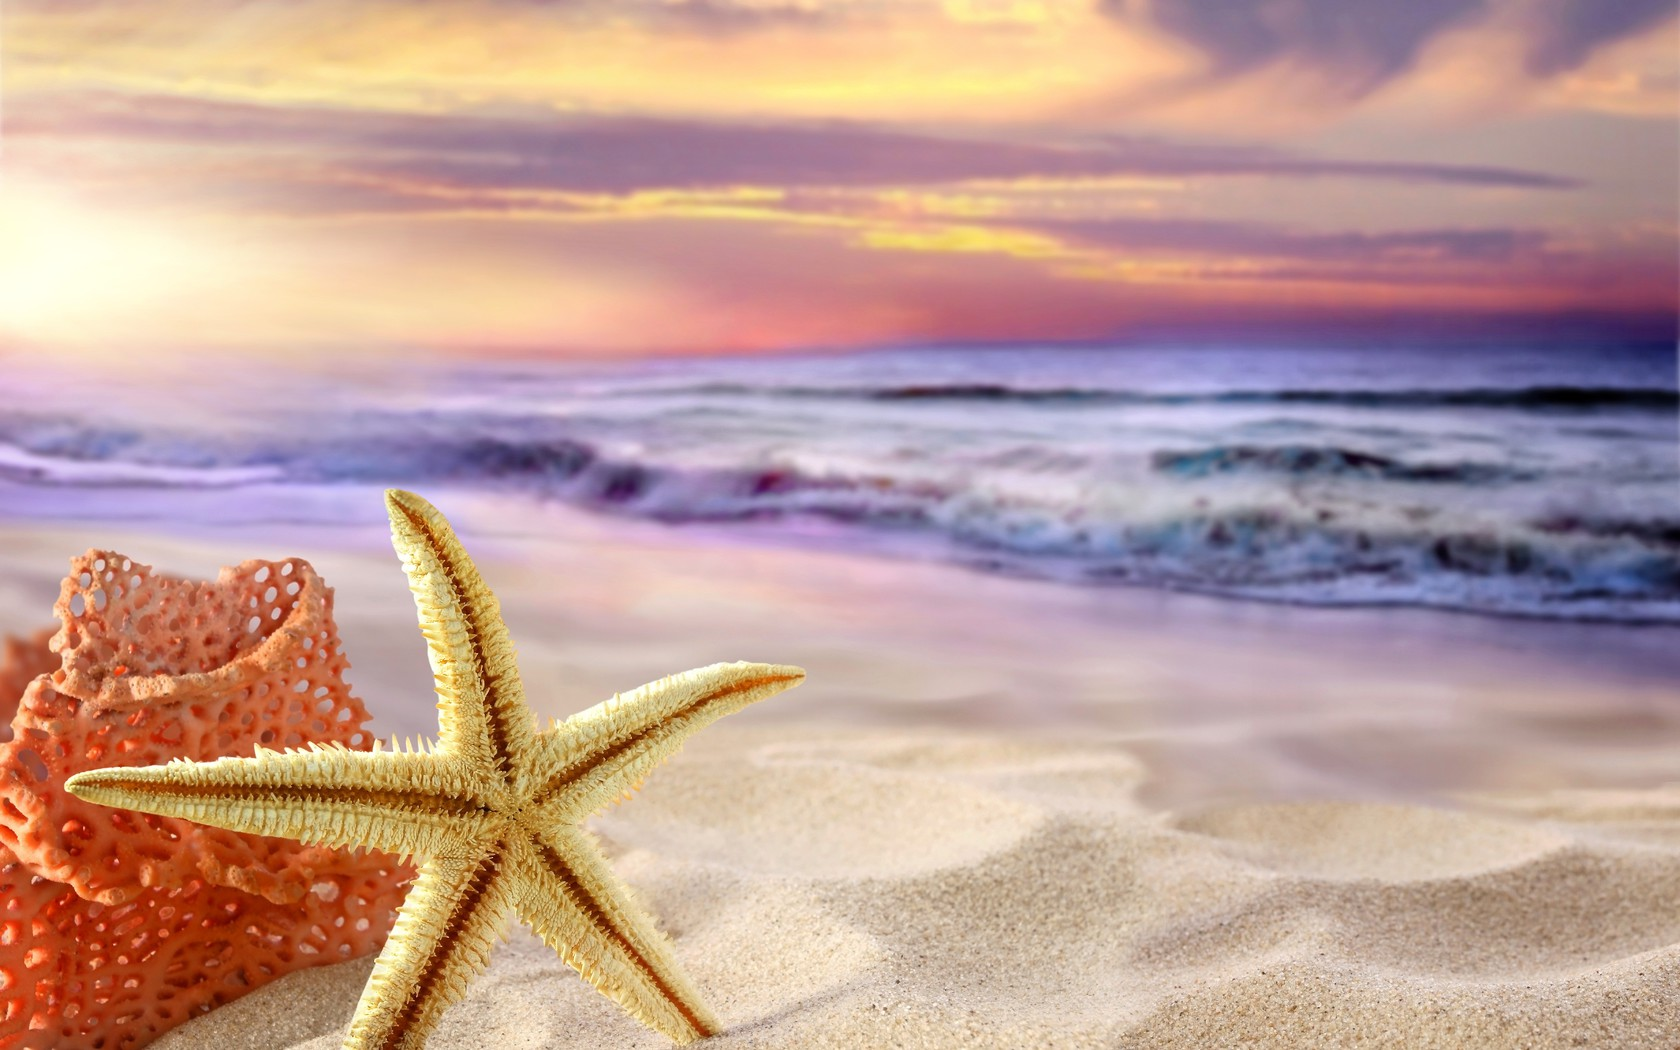 Iphone X Wallpaper Download Hd Starfish Wallpaper Allwallpaper In 14908 Pc En